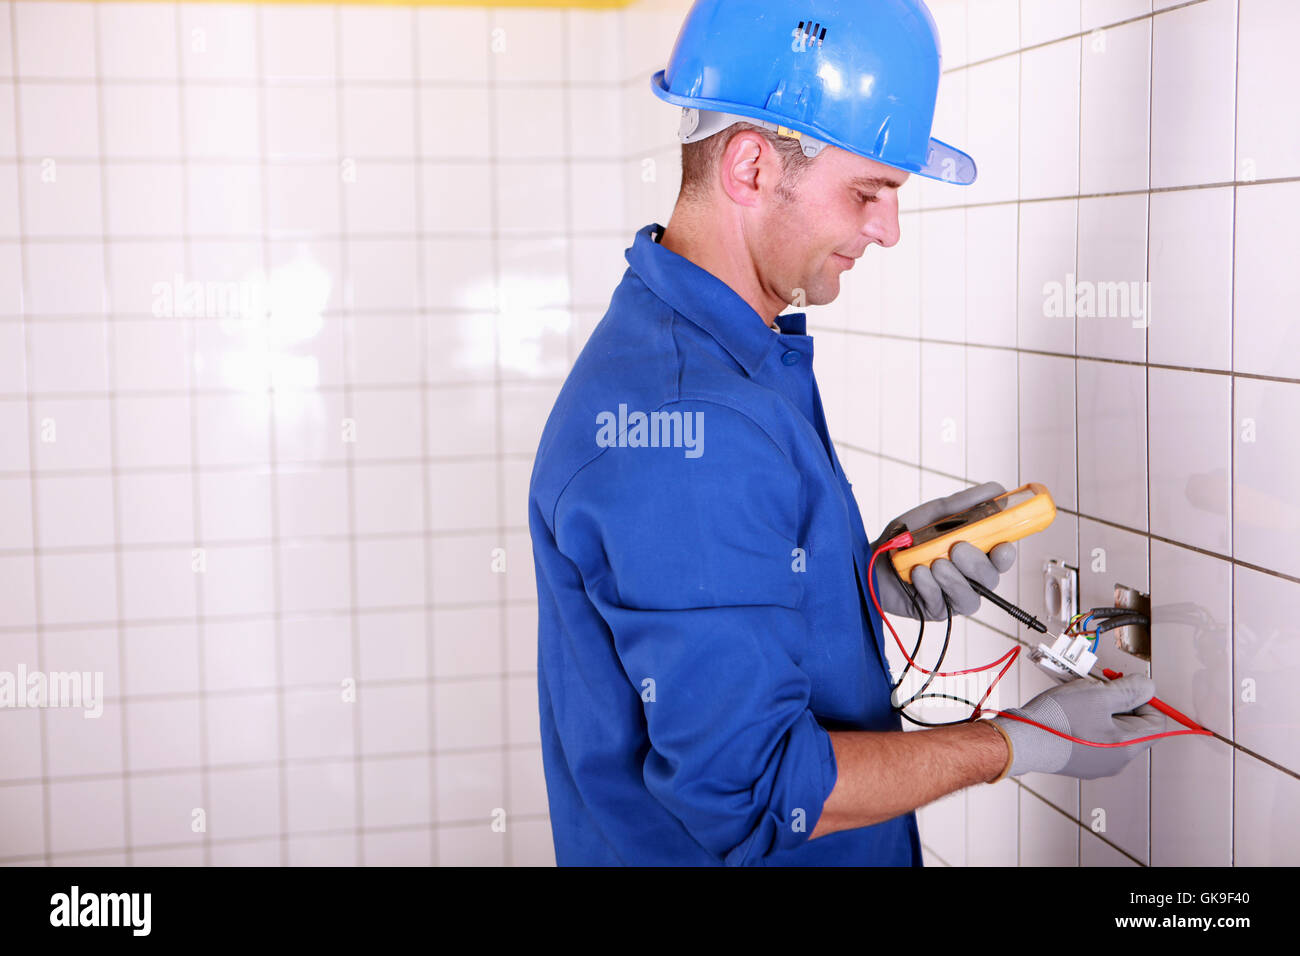 wall tile electrician - Stock Image